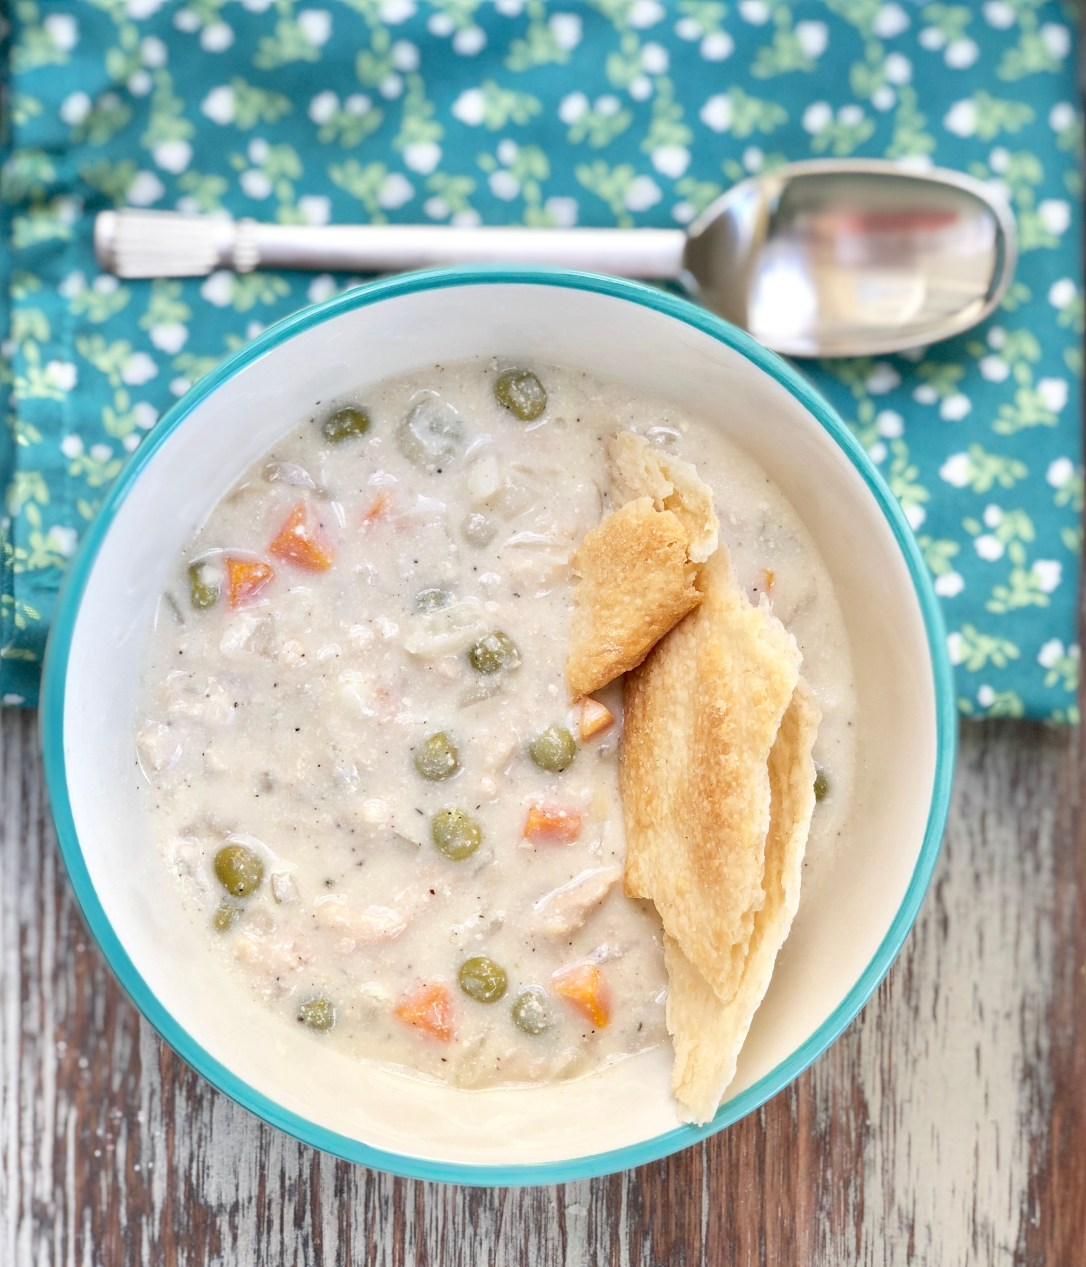 Food Allergy Friendly Crockpot Chicken Pot Pie Slow Cooker Recipe, Gluten Free, Top 8 Free